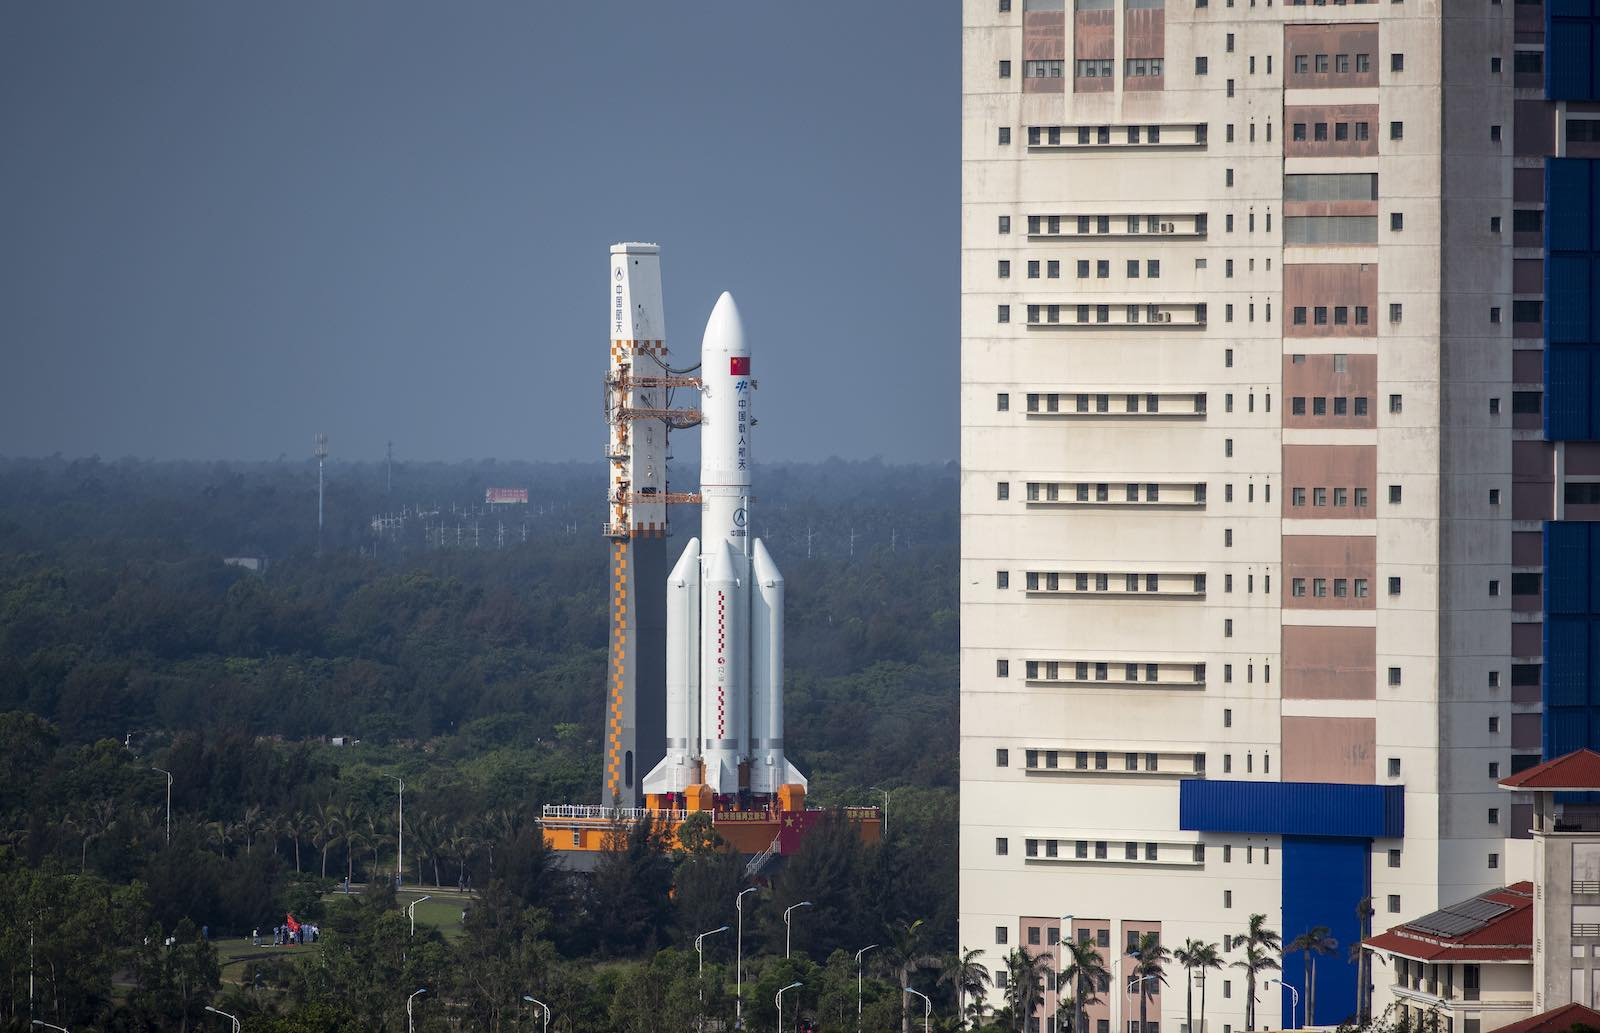 The rocket carrying the core module of China's space station, Tianhe, stands at the launching area of the Wenchang spacecraft launch site on 23 April 2021 in Hainan province (VCG via Getty Images)